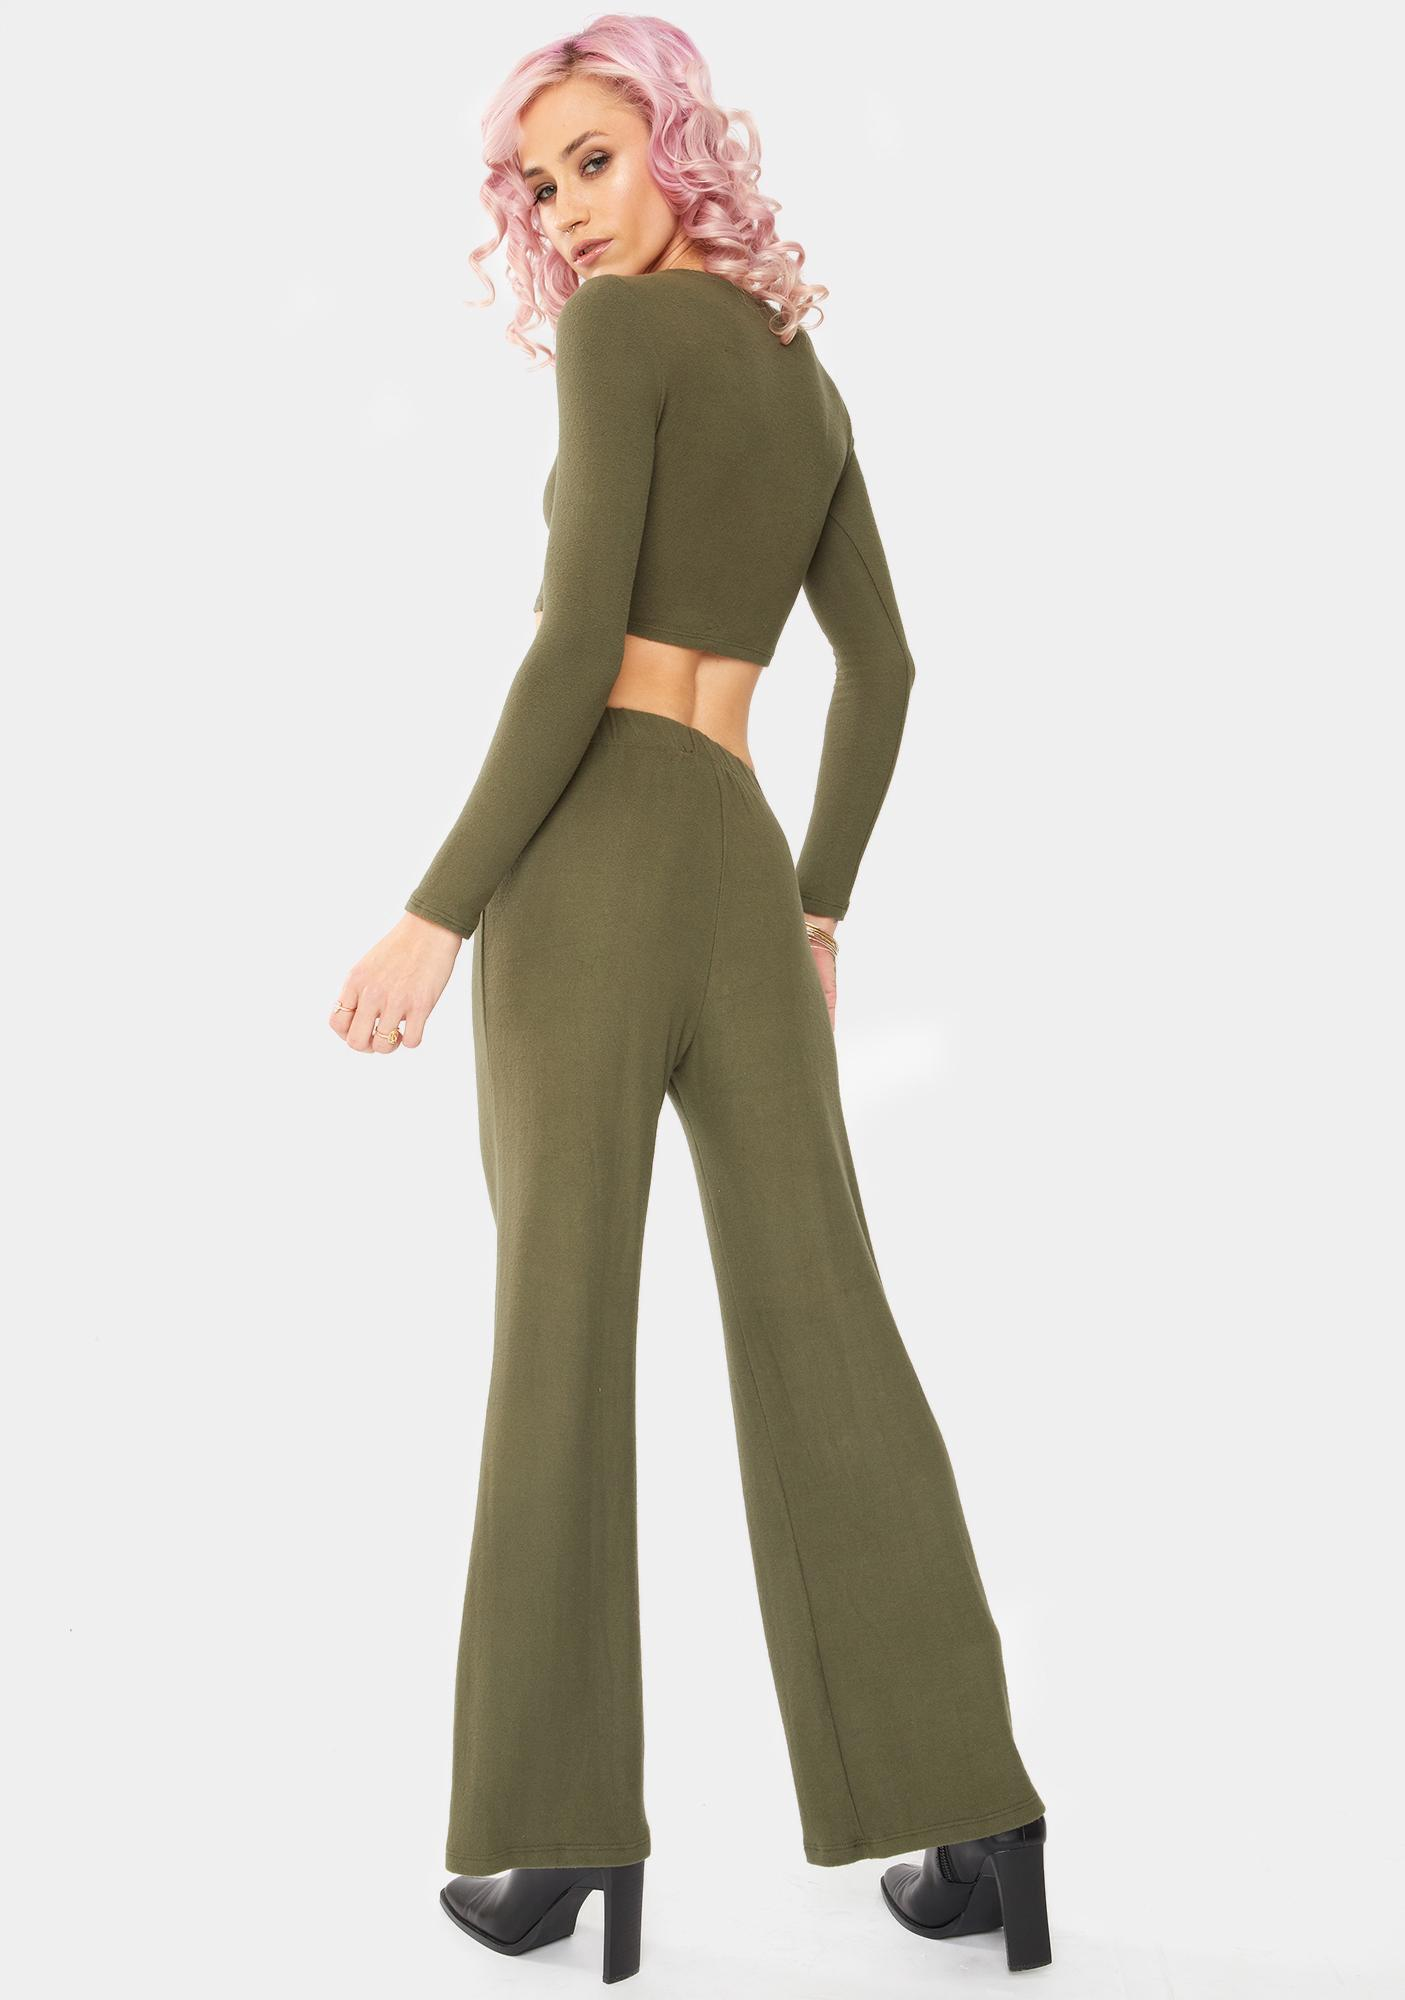 Bailey Rose Olive Lounge Pants